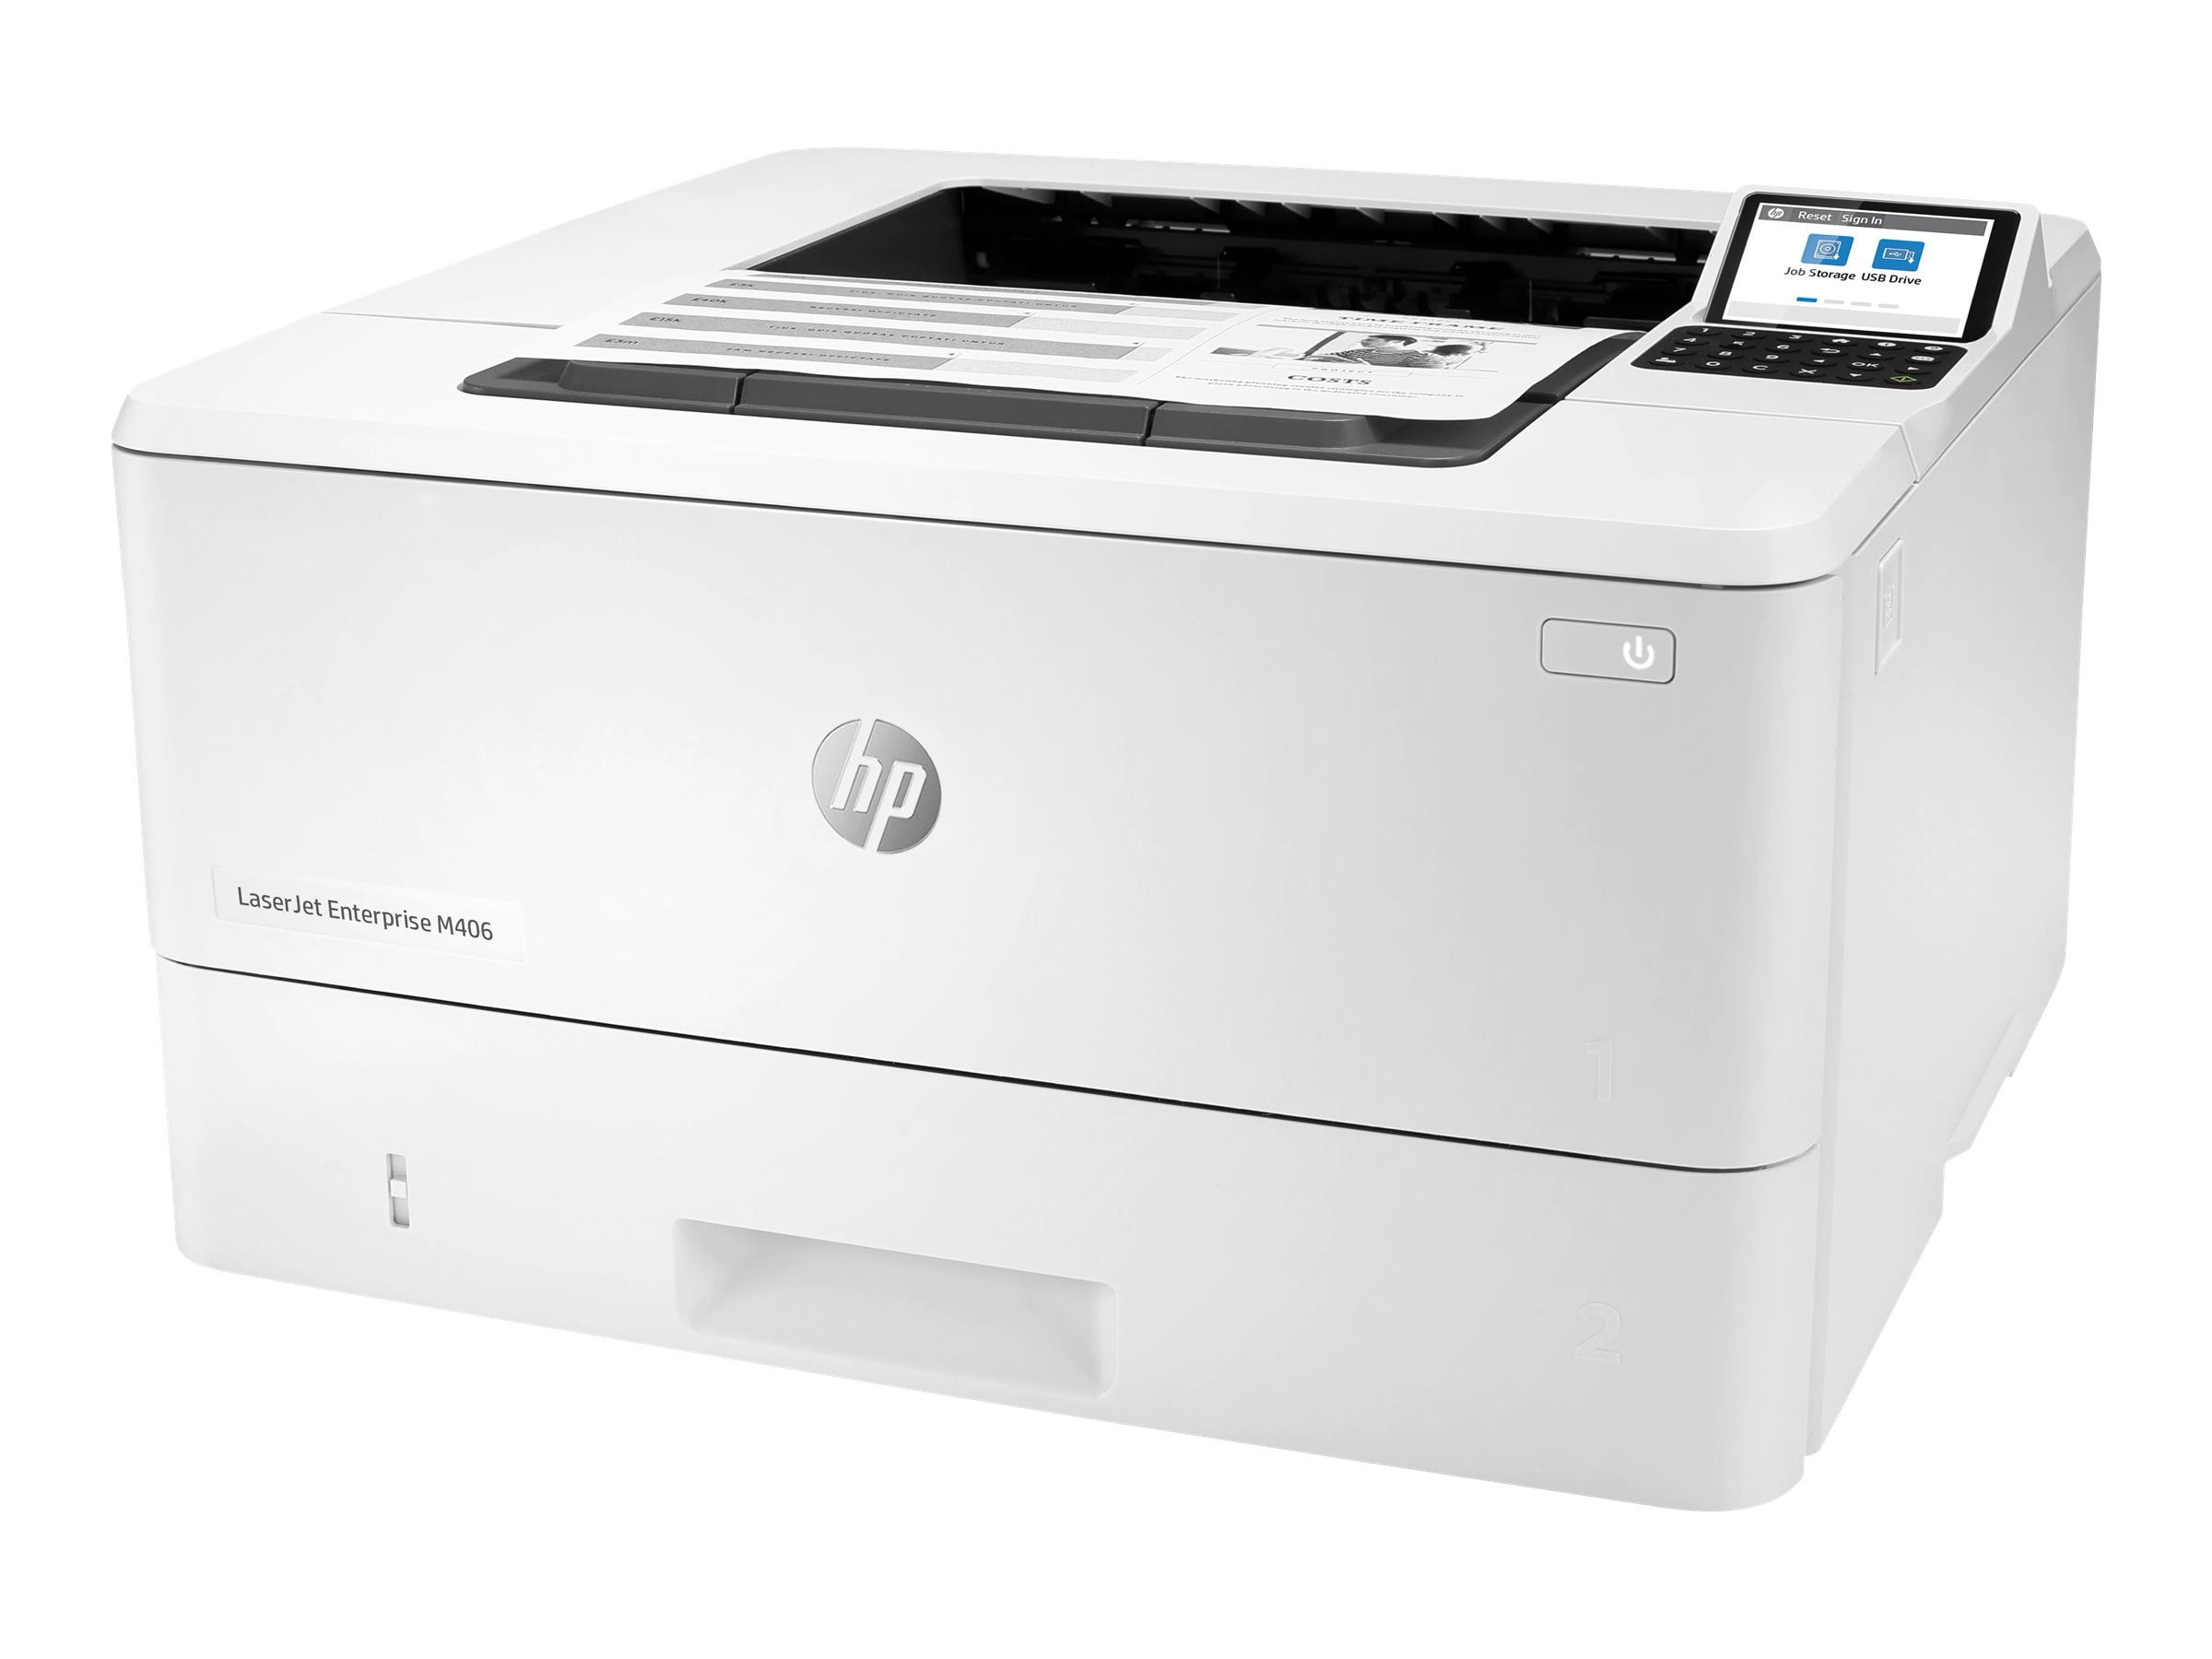 HP LaserJet Enterprise M406dn Mono Laser Printer, New (3PZ15A)